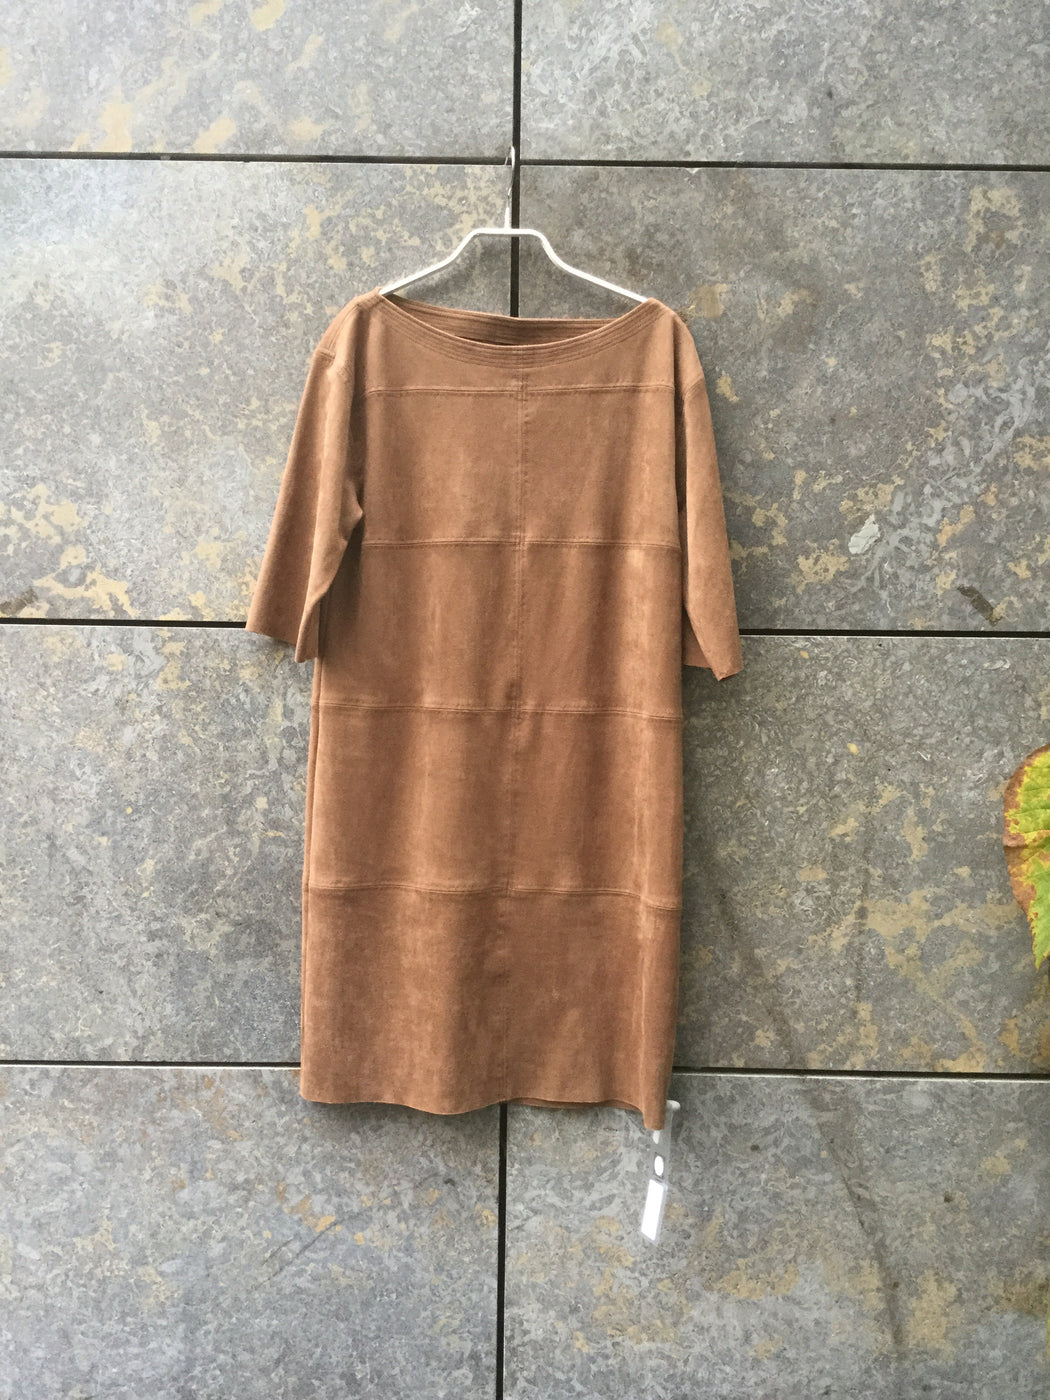 Tan Faux Suede Contemporary Main Cocoon Dress Loose-fit Size M/L